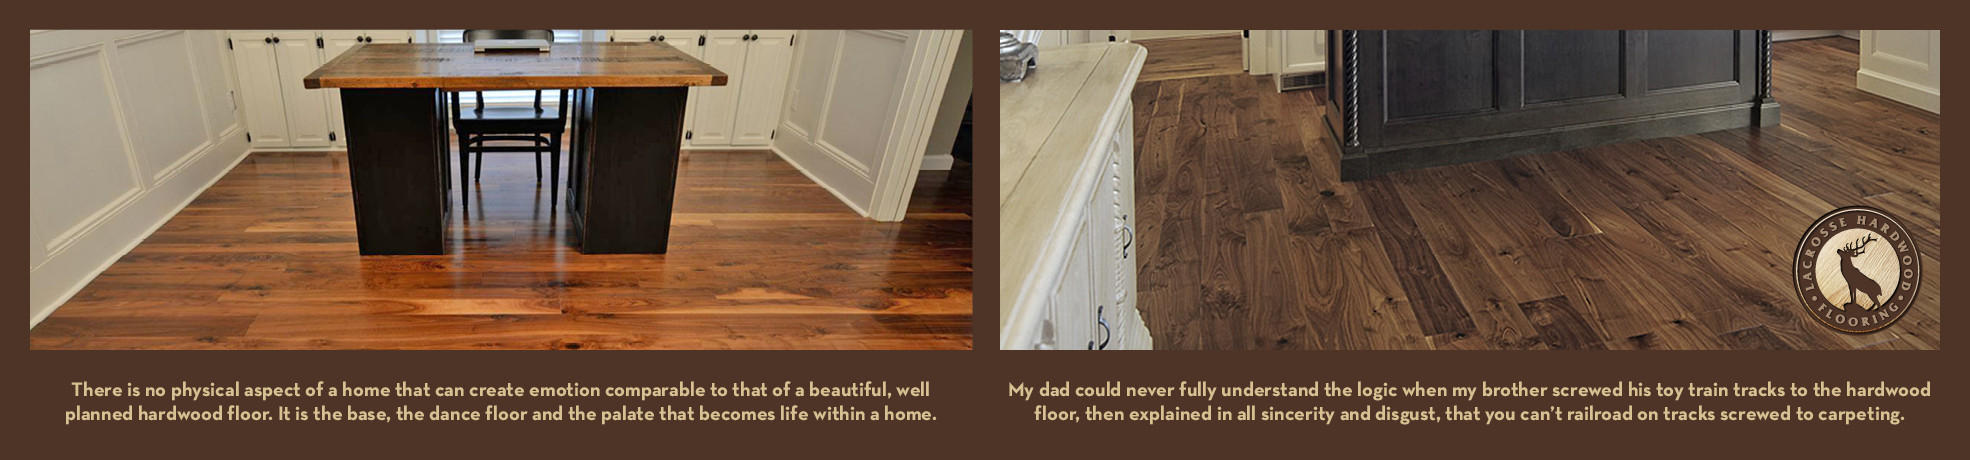 Discount Hardwood Floors and Molding Of Lacrosse Hardwood Flooring Walnut White Oak Red Oak Hickory with Lhfsliderv22